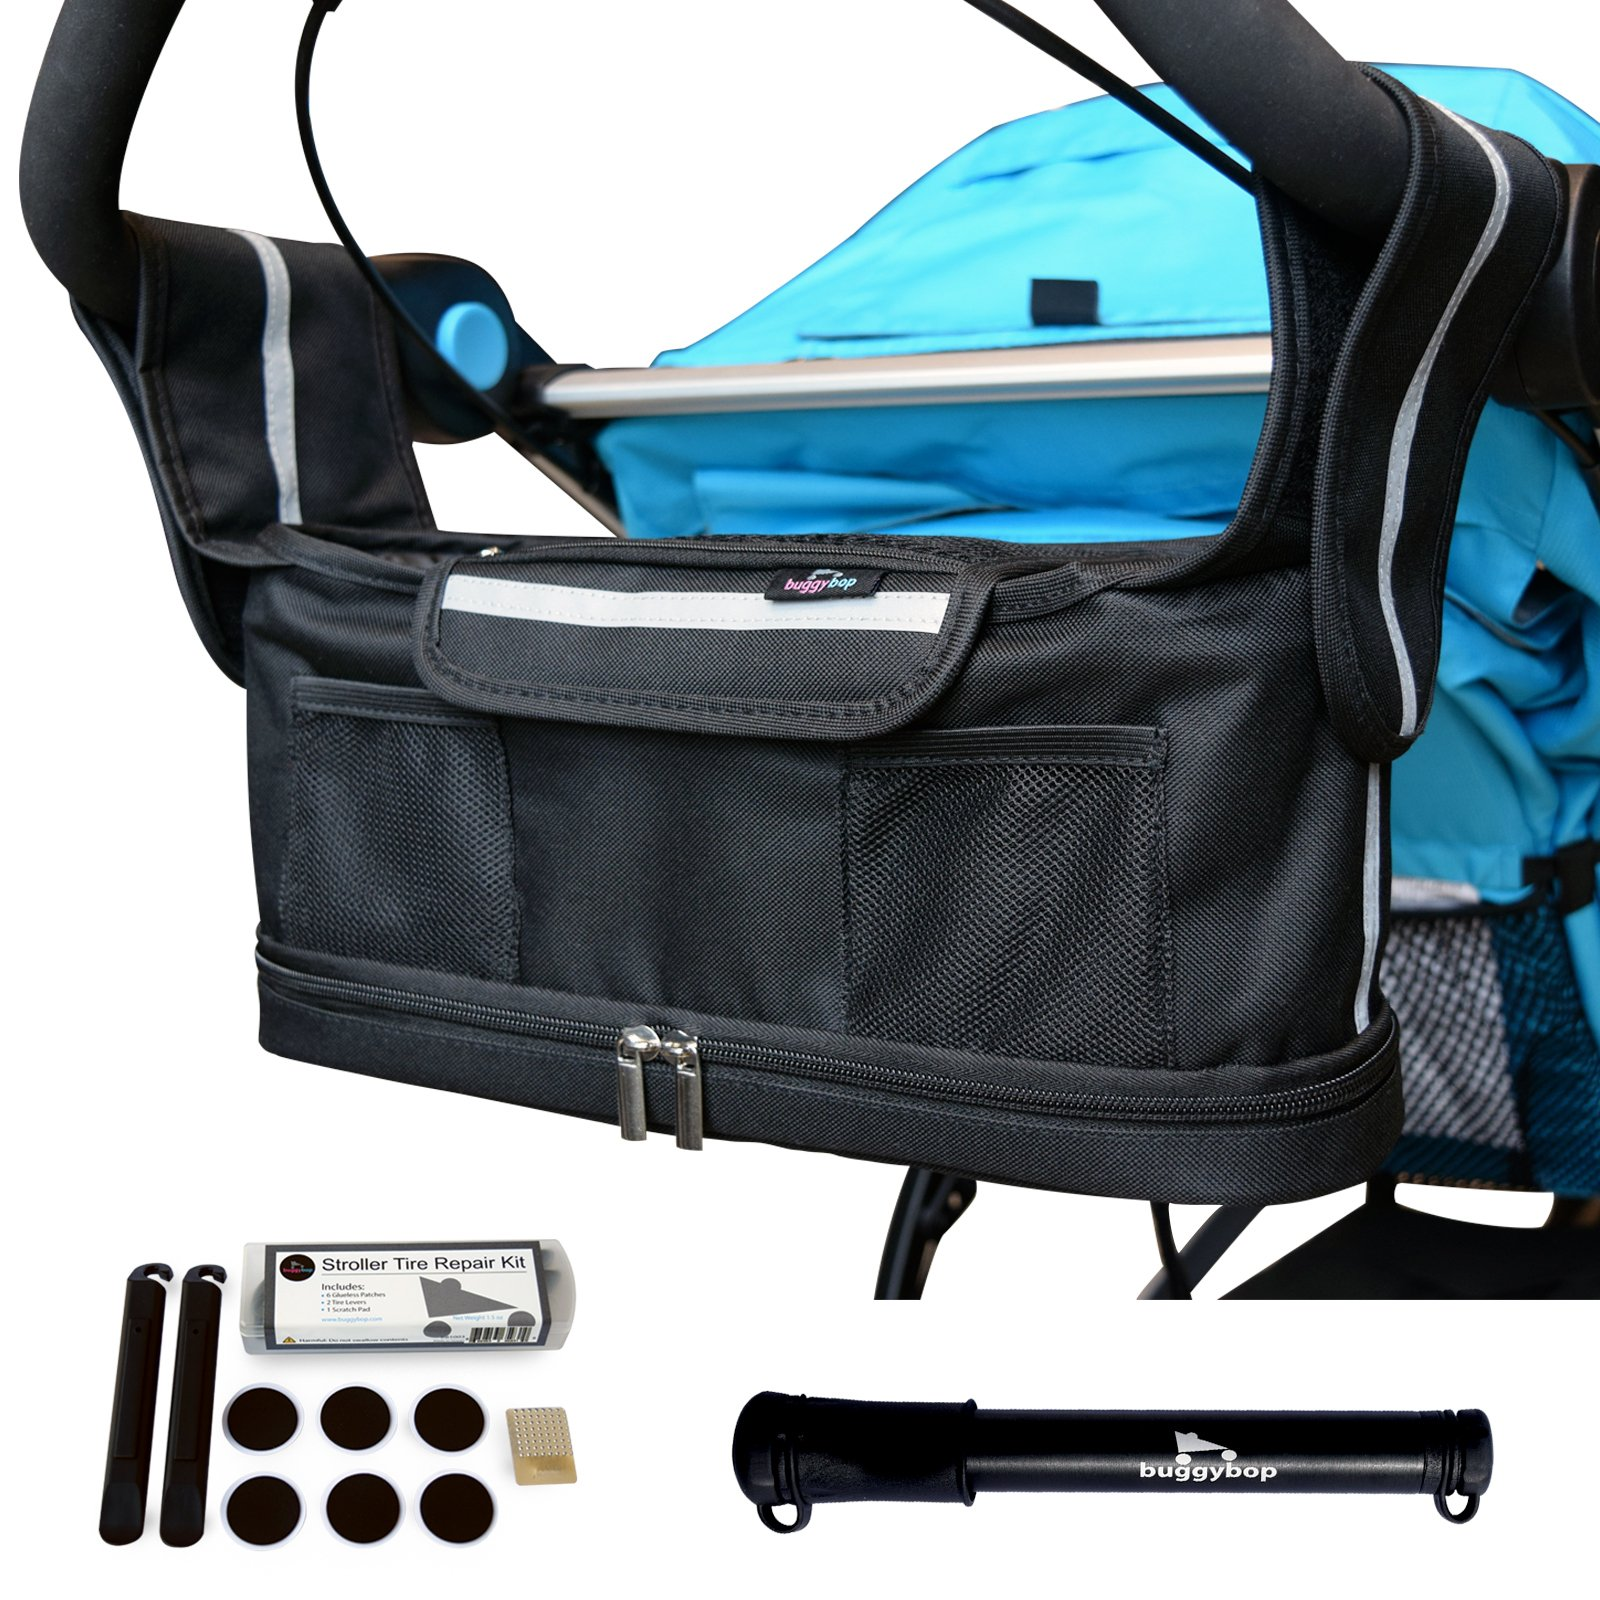 Jogging Stroller Organizer with Stroller Tire Pump & Tire Repair Kit - Universal Fit Stroller Accessory with Insulated Cup Holder